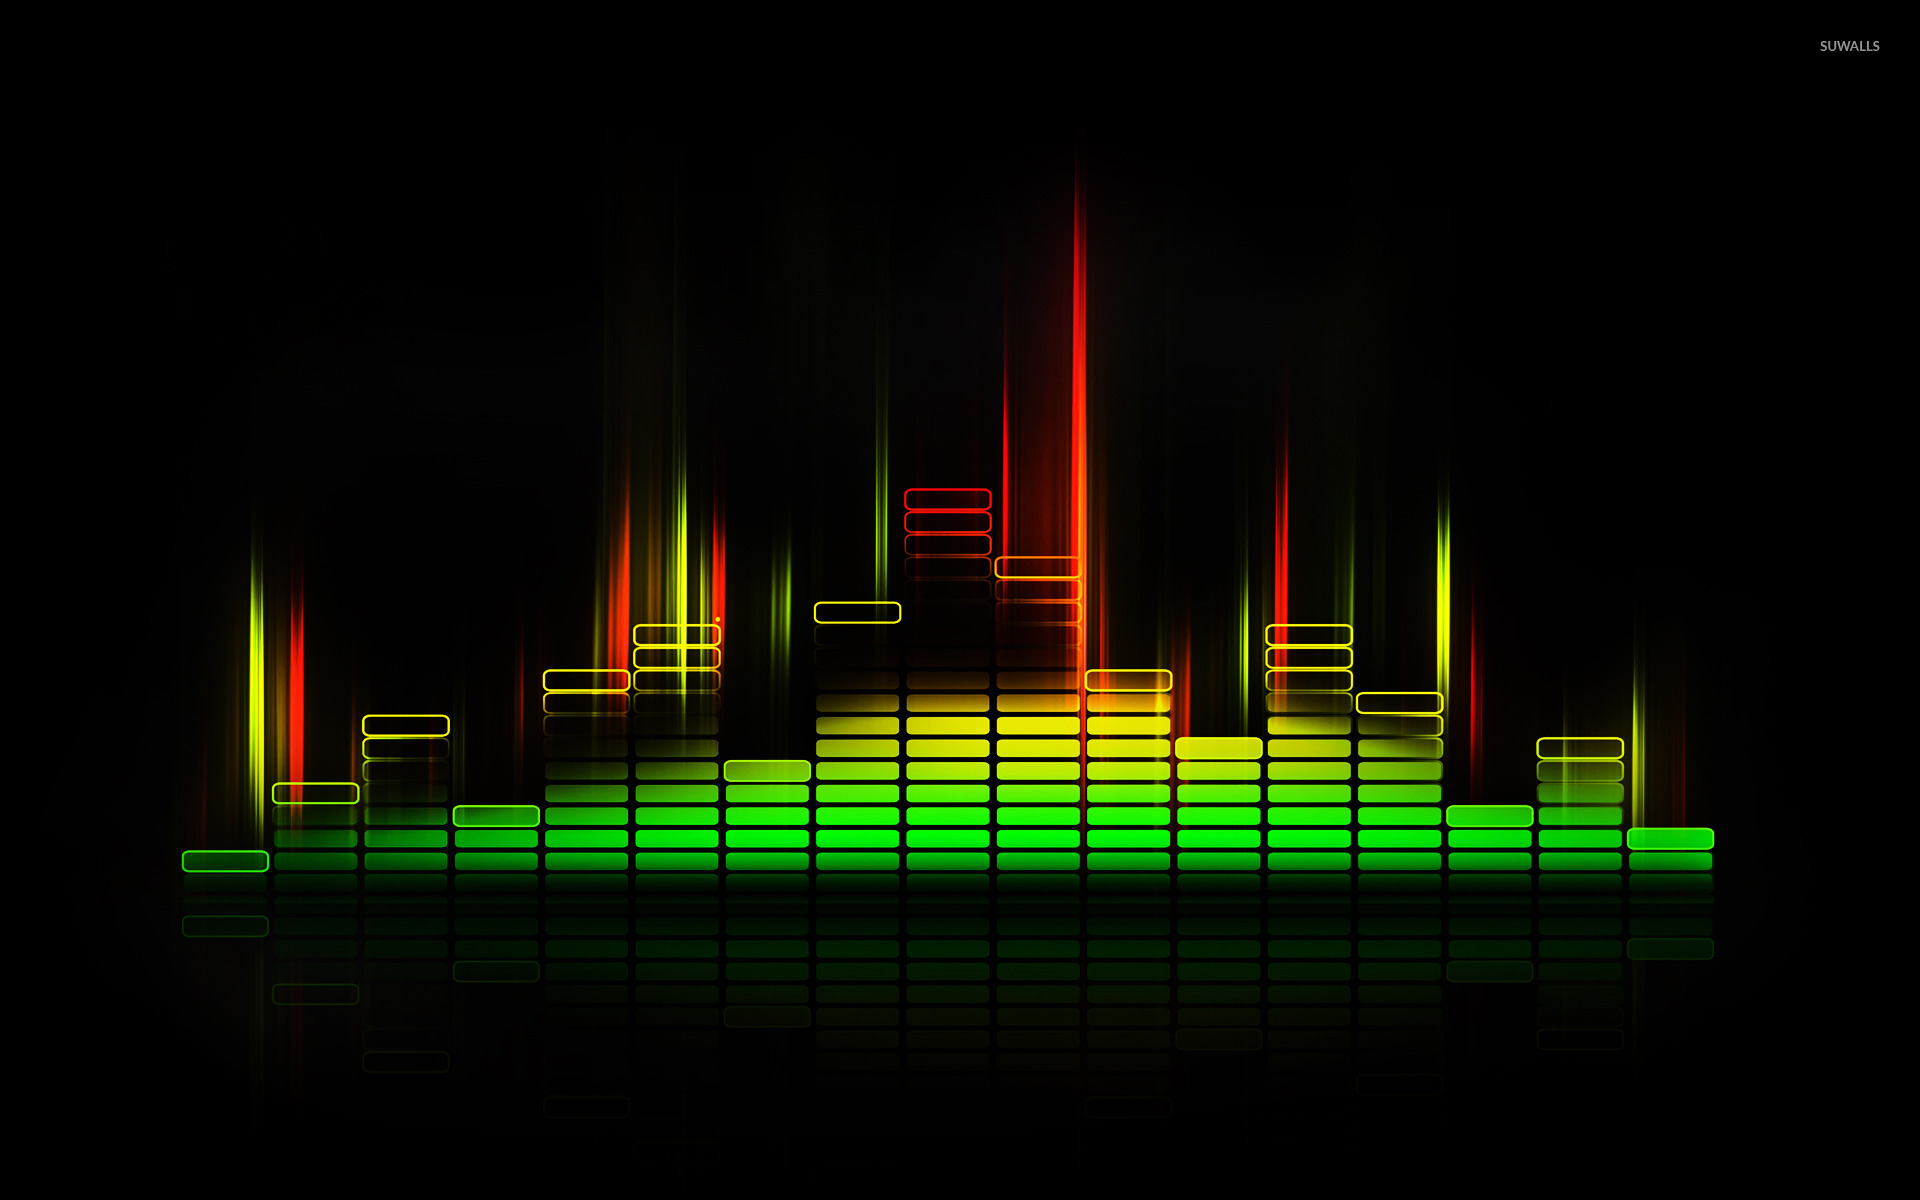 Equalizer wallpaper - Abstract wallpapers - #23479